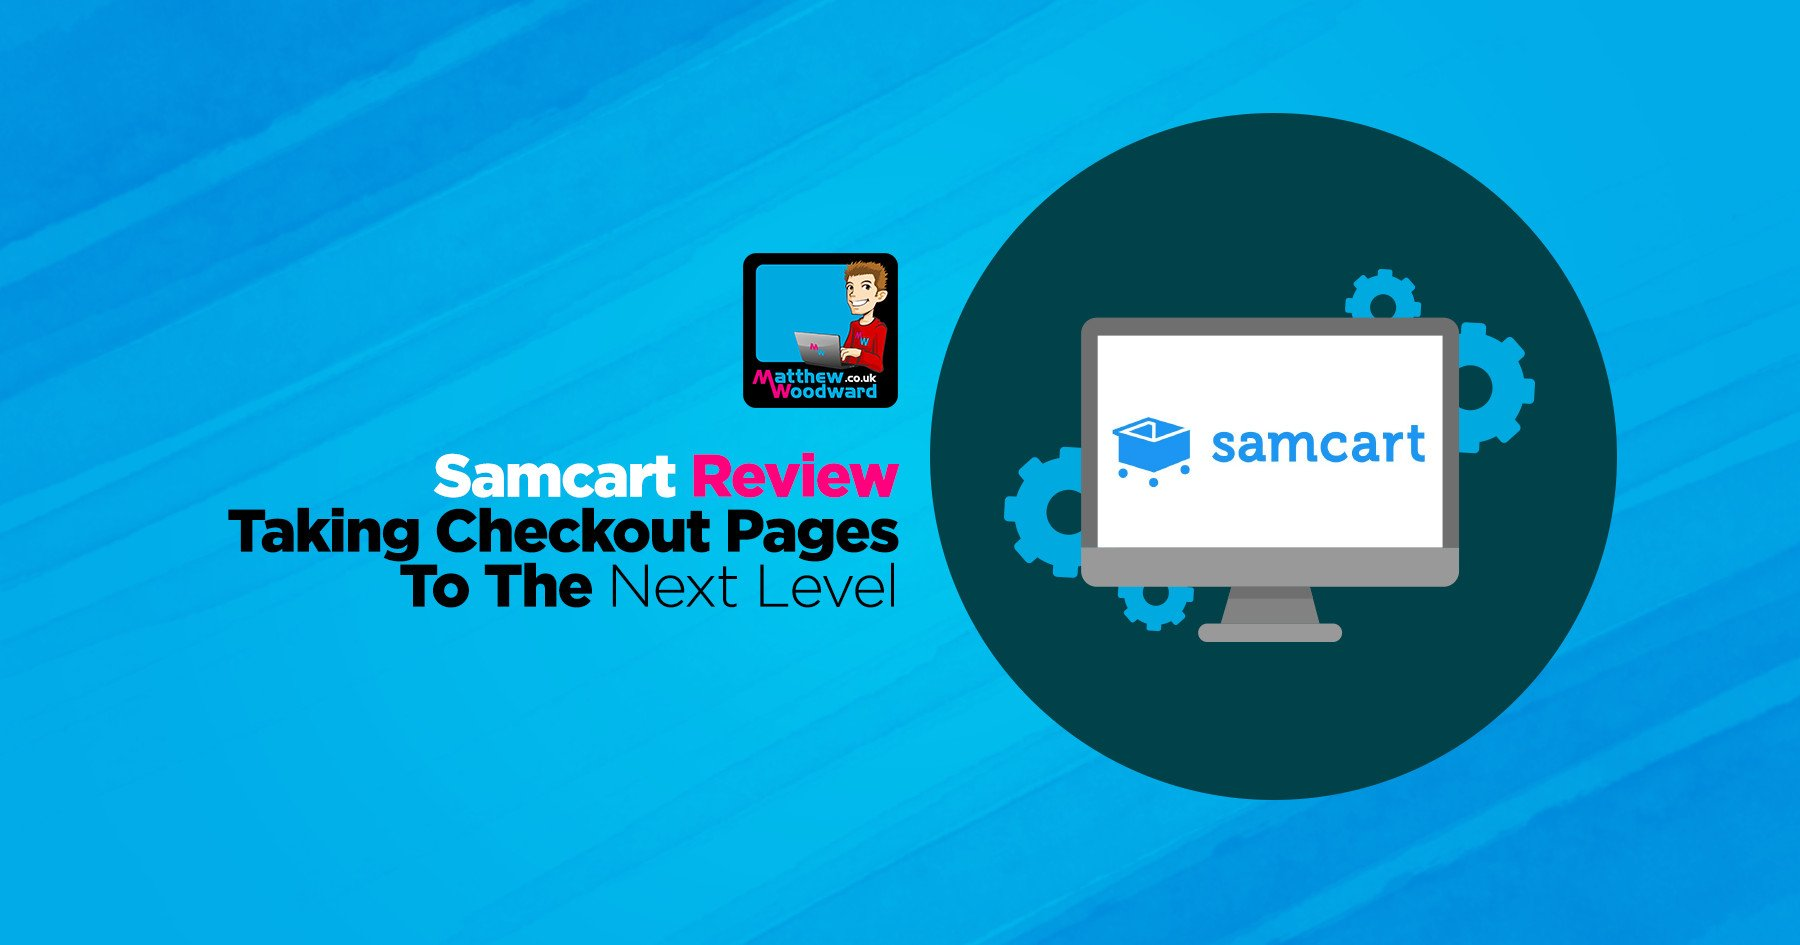 Buy Landing Page Software Samcart  Price Pictures